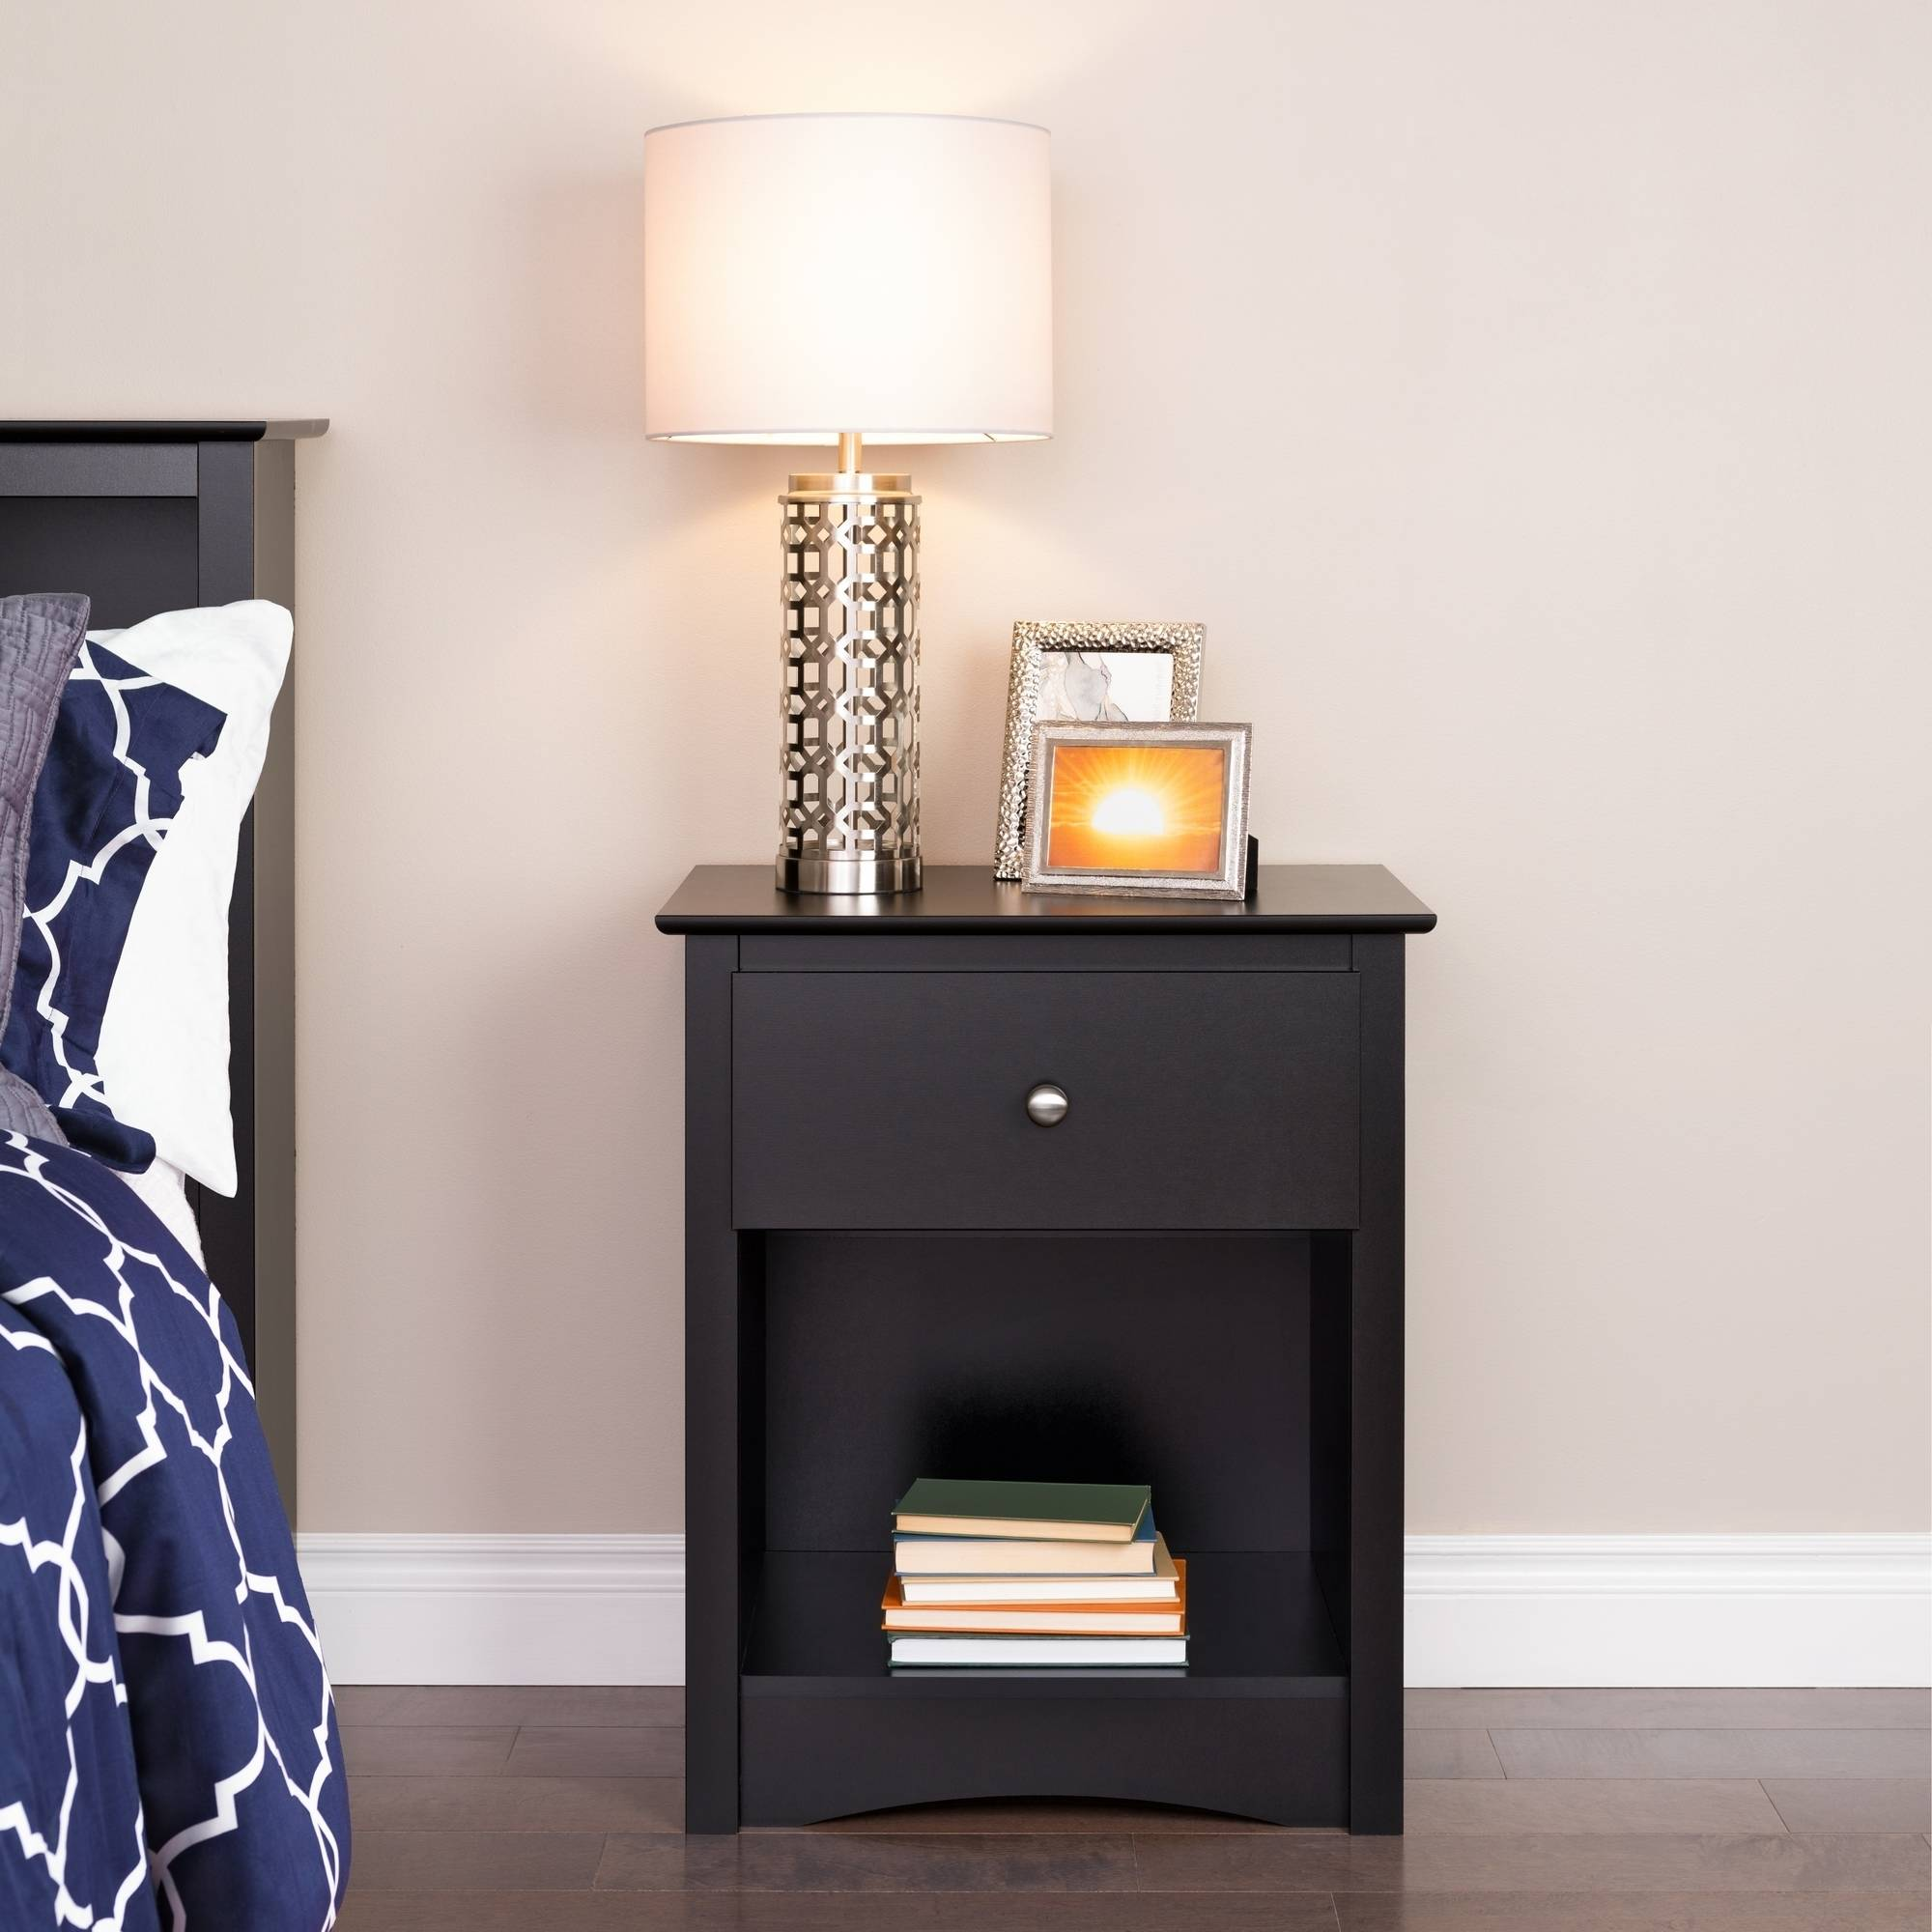 Prepac Sonoma 1-Drawer Tall Nightstand with Open Shelf, Black